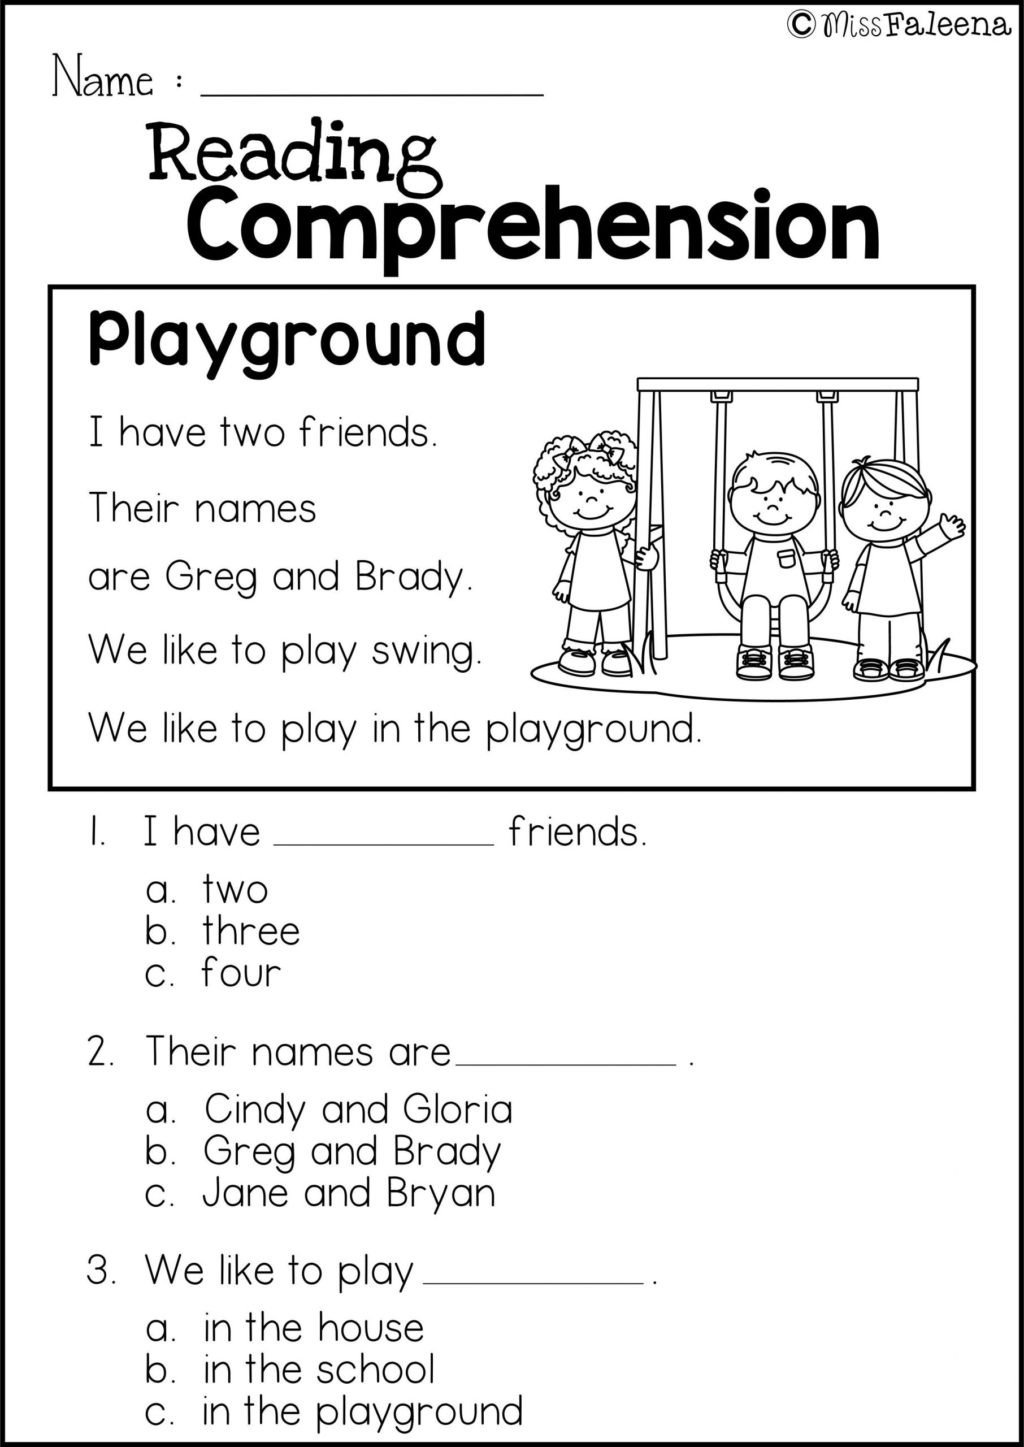 Free 1st Grade Comprehension Worksheets 47 Phenomenal 1st Grade Reading Prehension Games Picture